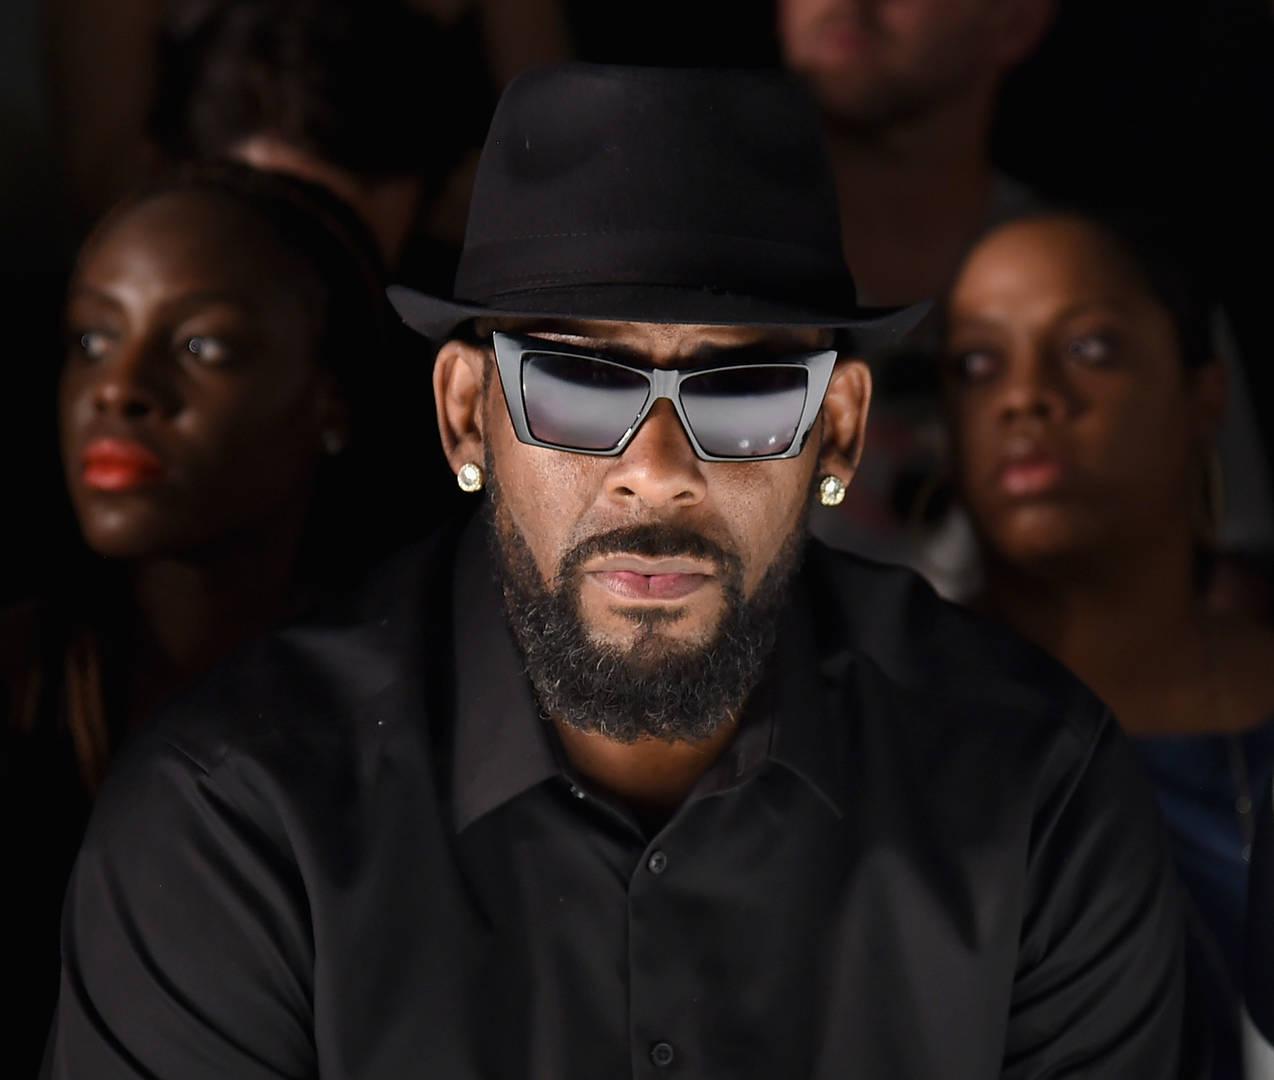 R Kelly charged with 10 counts of criminal sex abuse